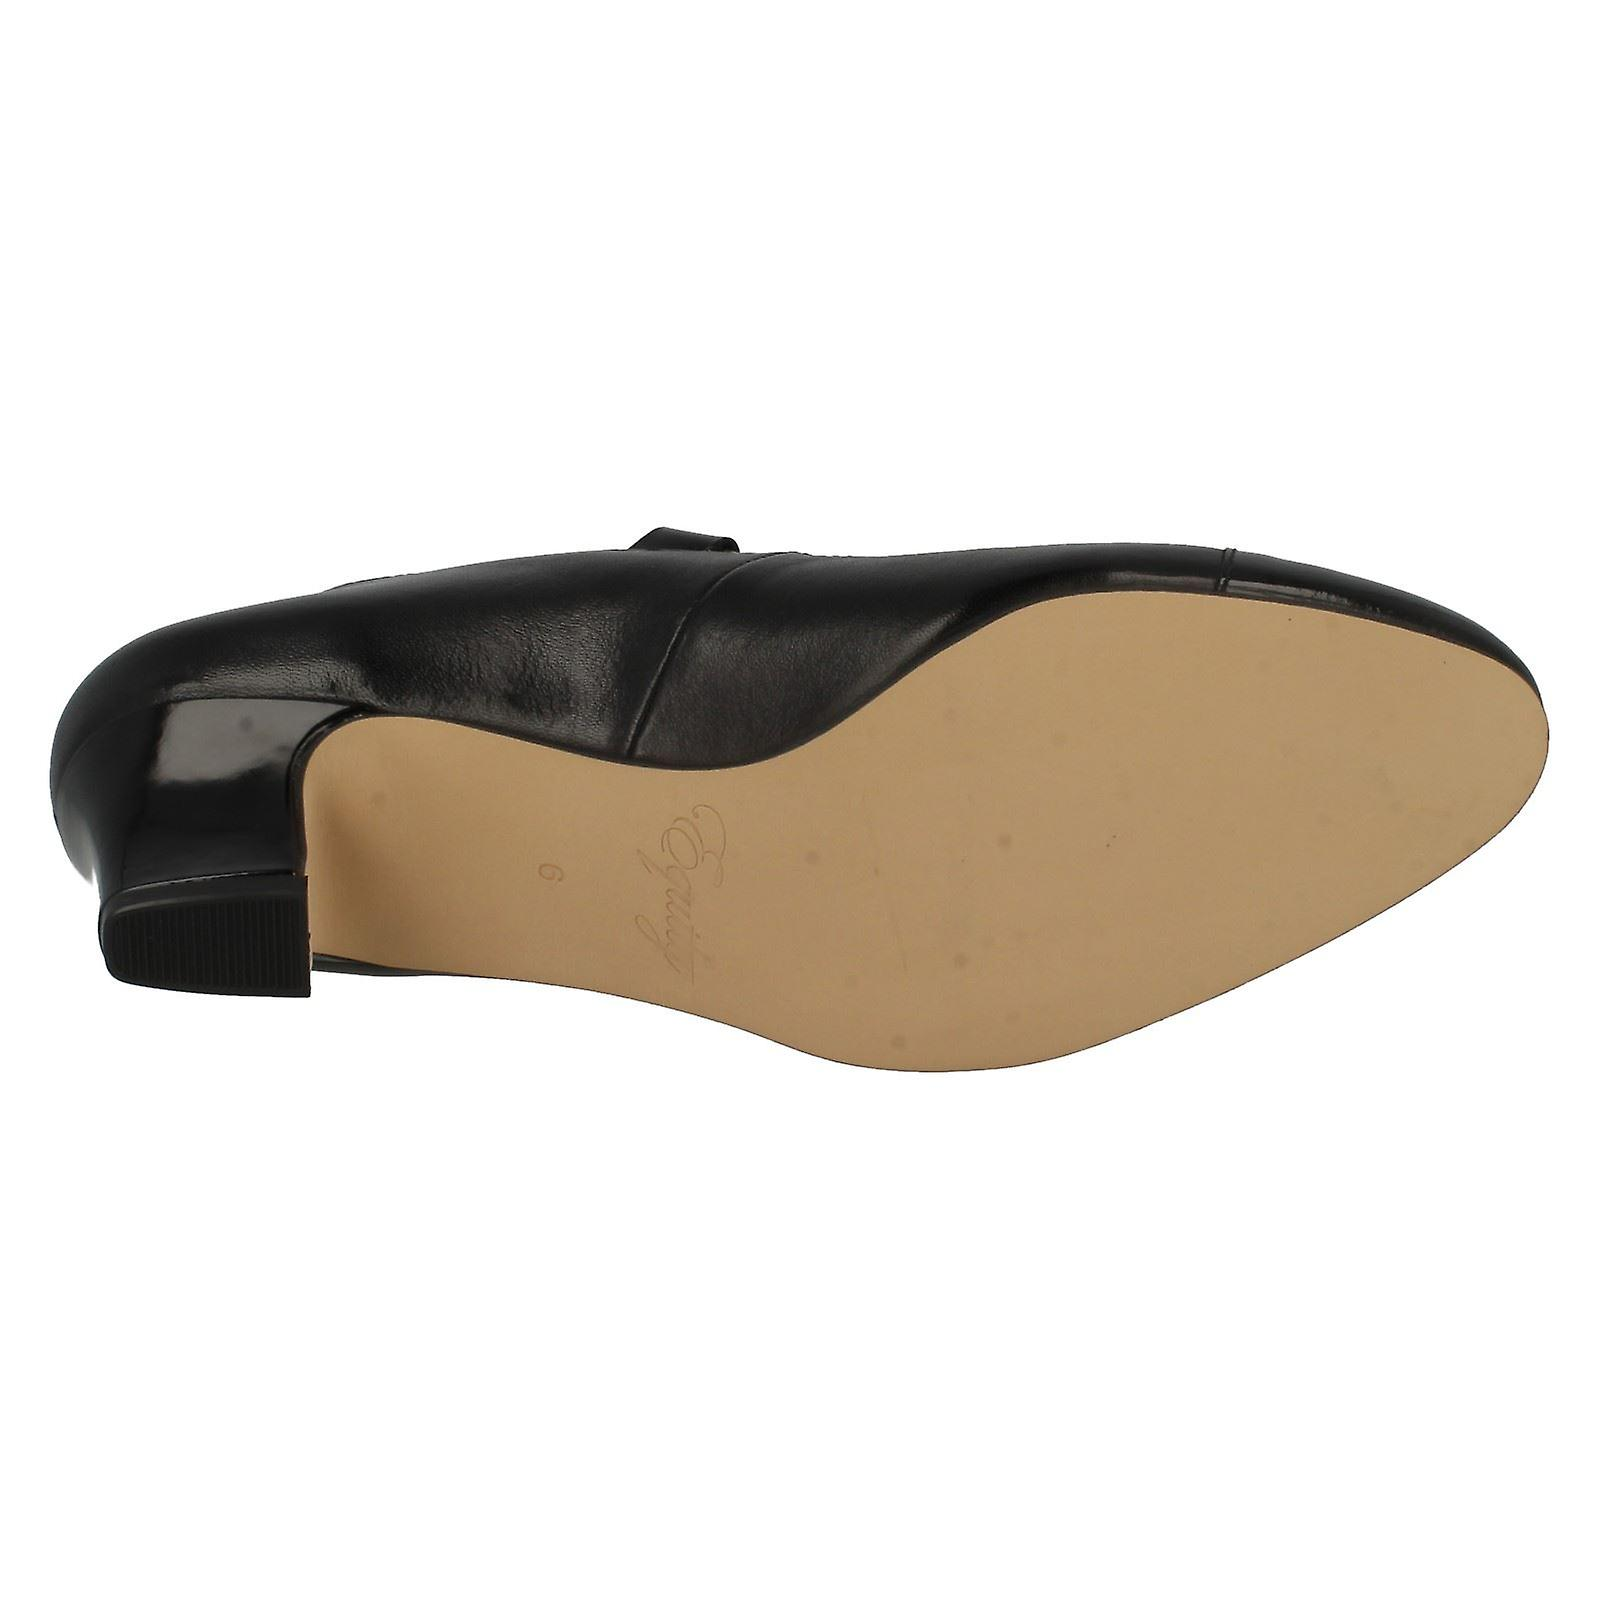 Grace Equity Ladies Shoes with Smart Strap qdq1fXw